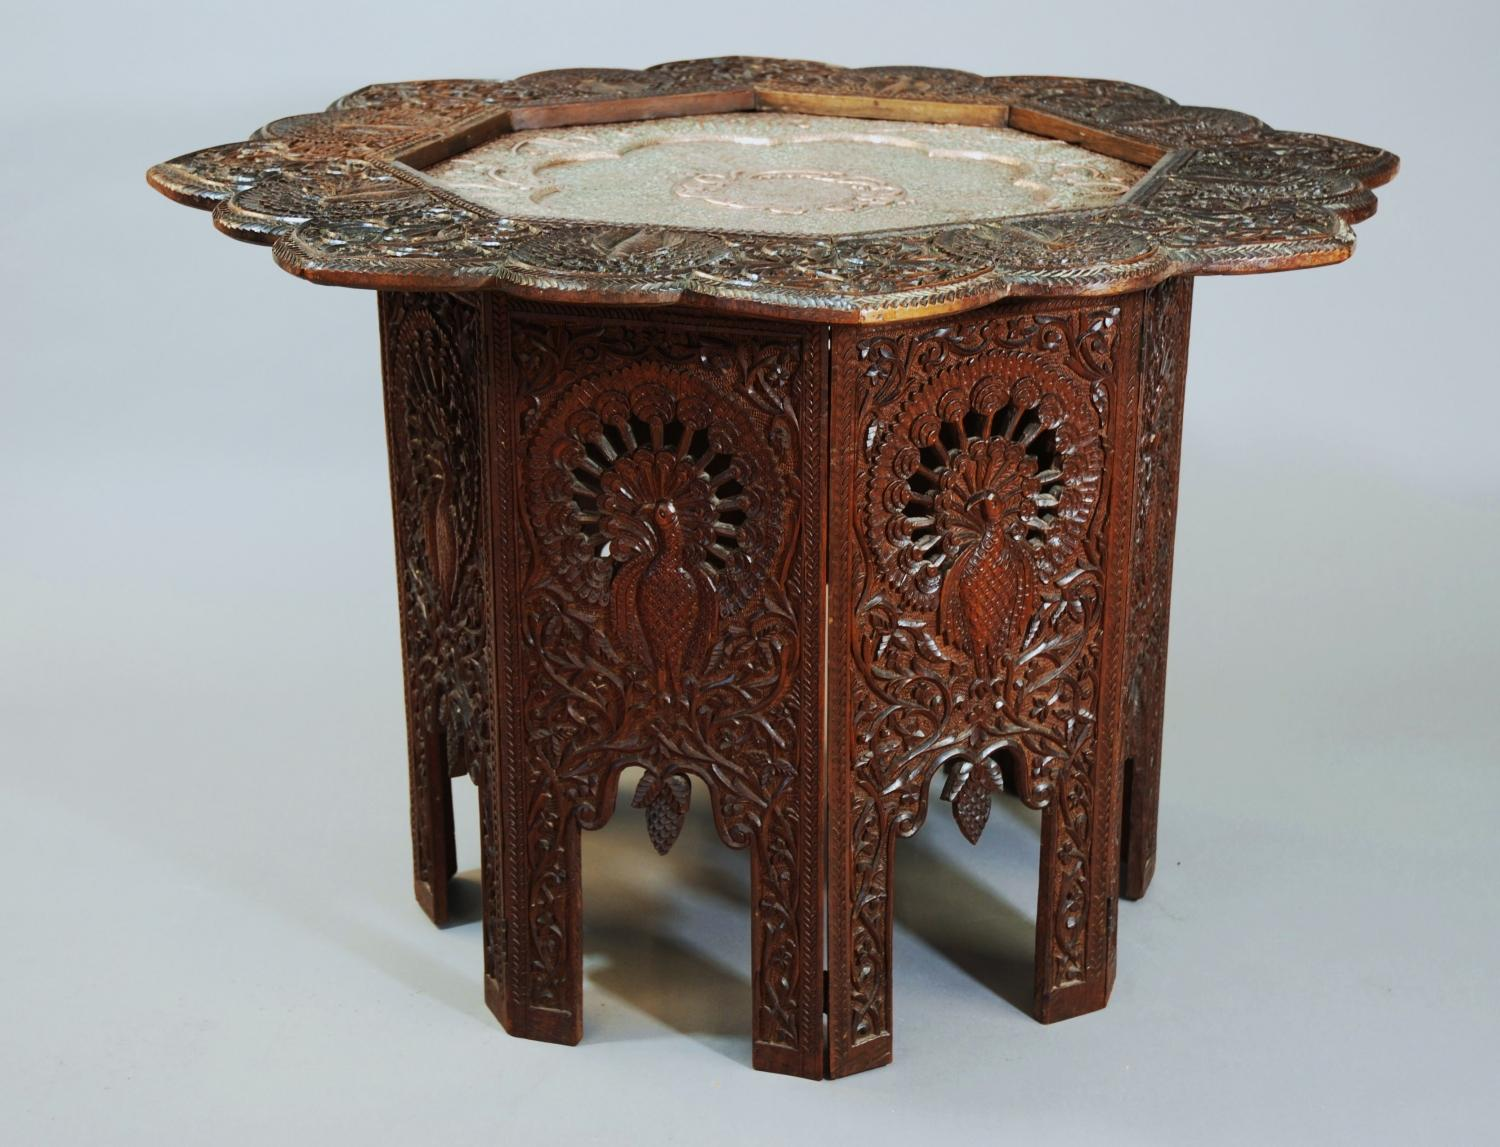 Middle Eastern table with copper top